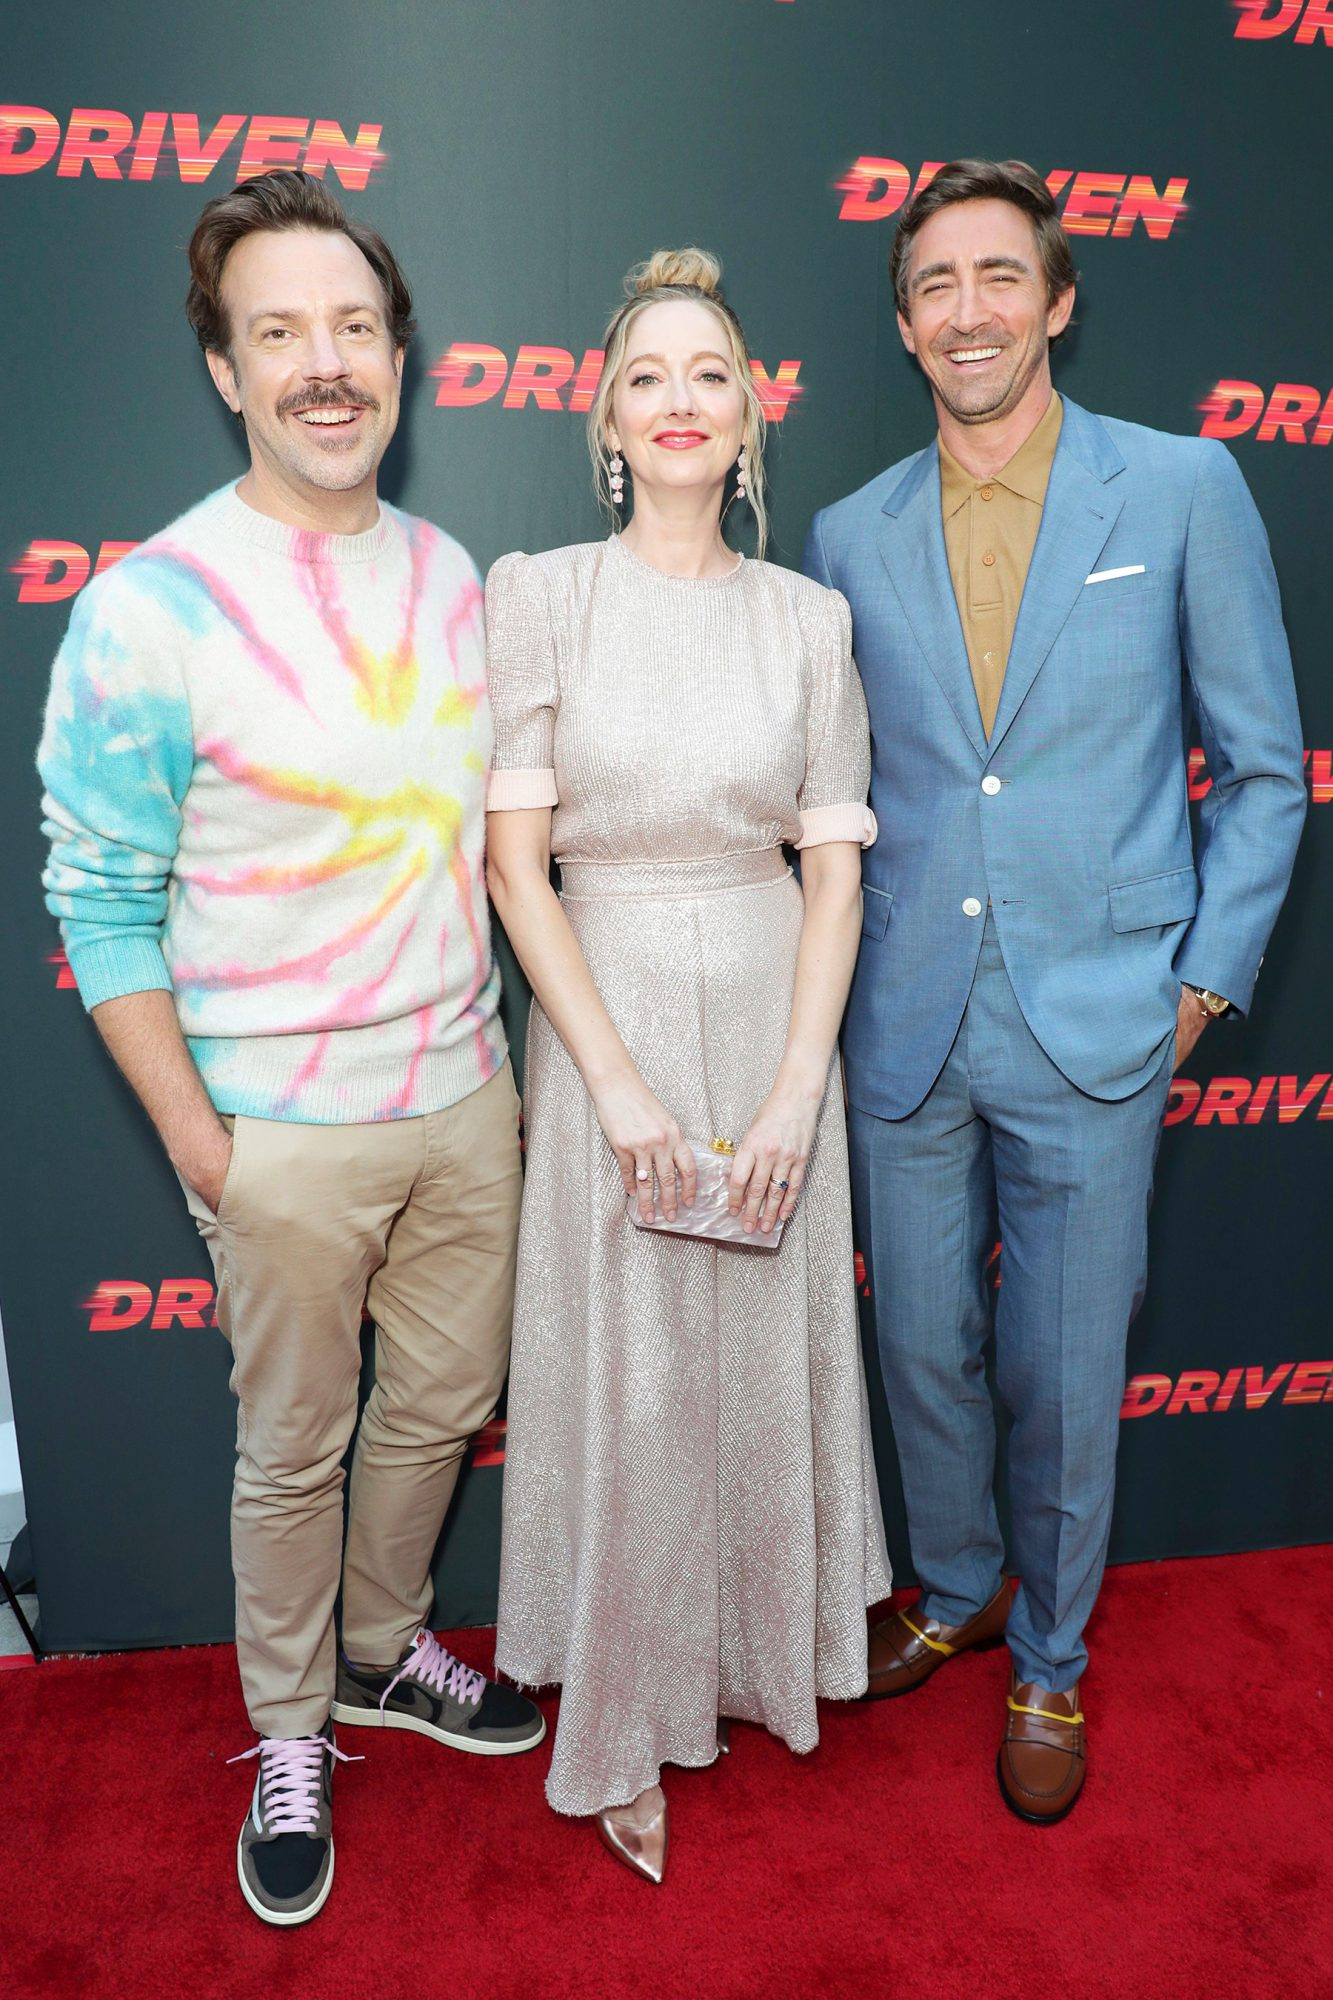 Jason Sudeikis, Judy Greer and Lee Pace